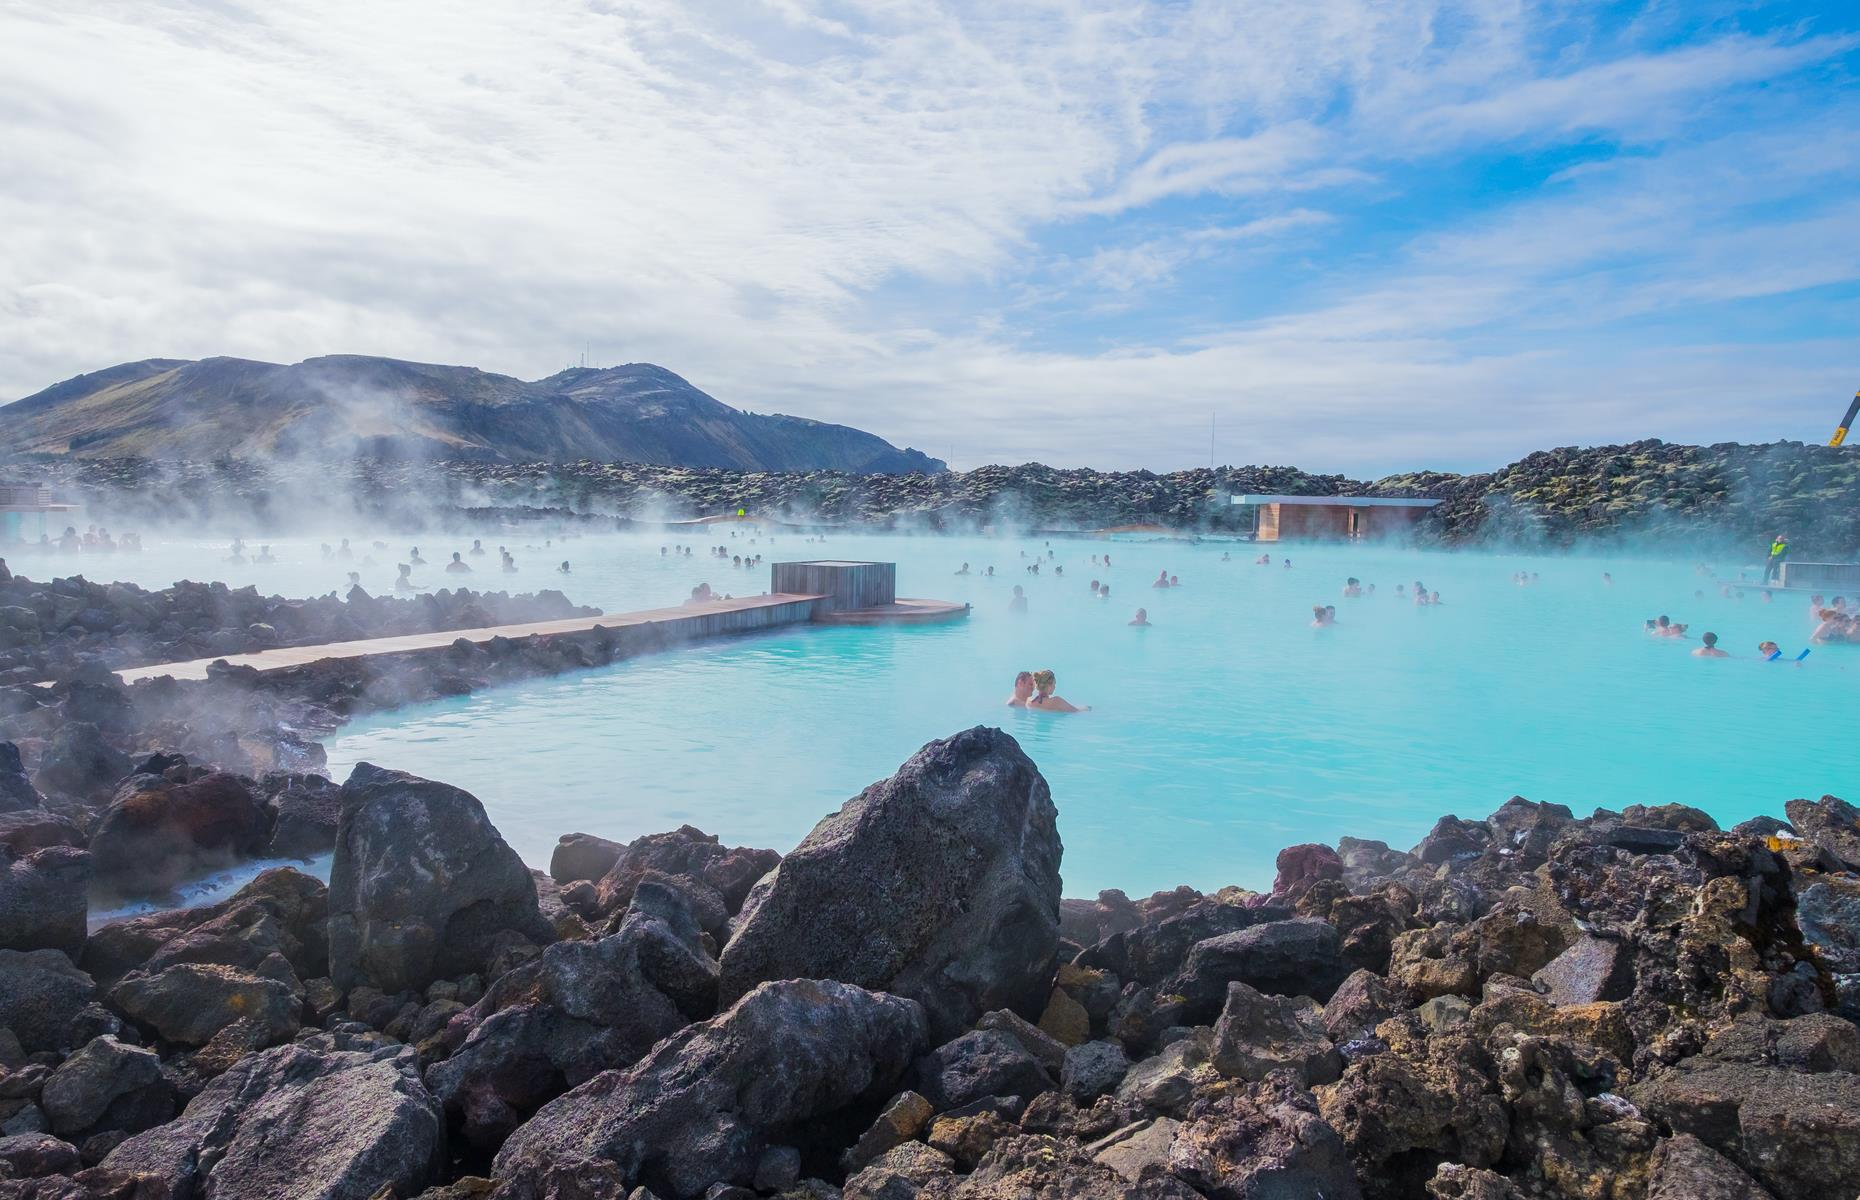 Slide 19 of 31: Iceland is packed with natural wonders but one of its most well-known sights, the Blue Lagoon, is actually man-made. In fact, the geothermal spa which is rich in minerals, was formed in 1976 by accident – it's actually wastewater produced by a nearby power plant. People began bathing in the warm waters in the early 1980s and discovered its benefit for skin conditions. It was officially opened to the public in 1992. The lagoon's distinct blue waters are caused by its high silica content which reflects the light. Check out more of the world's colorful places.